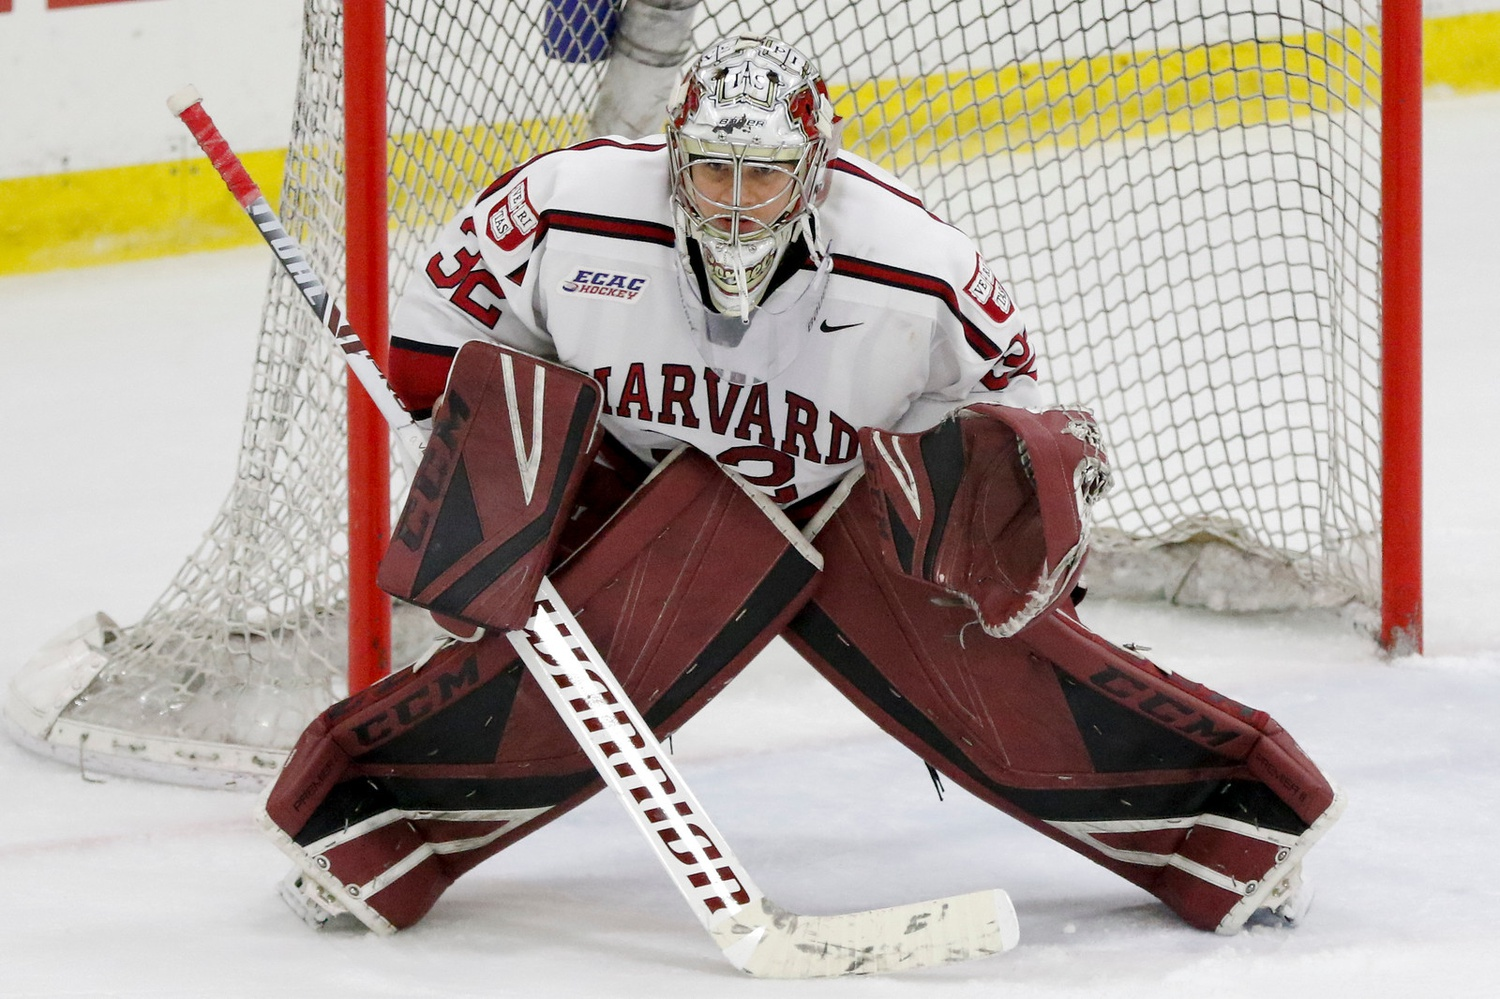 Senior Cameron Gornet has earned the starting role in net to begin the season. His crucial play late last year propelled the Crimson to key wins in its run to the NCAA Tournament.